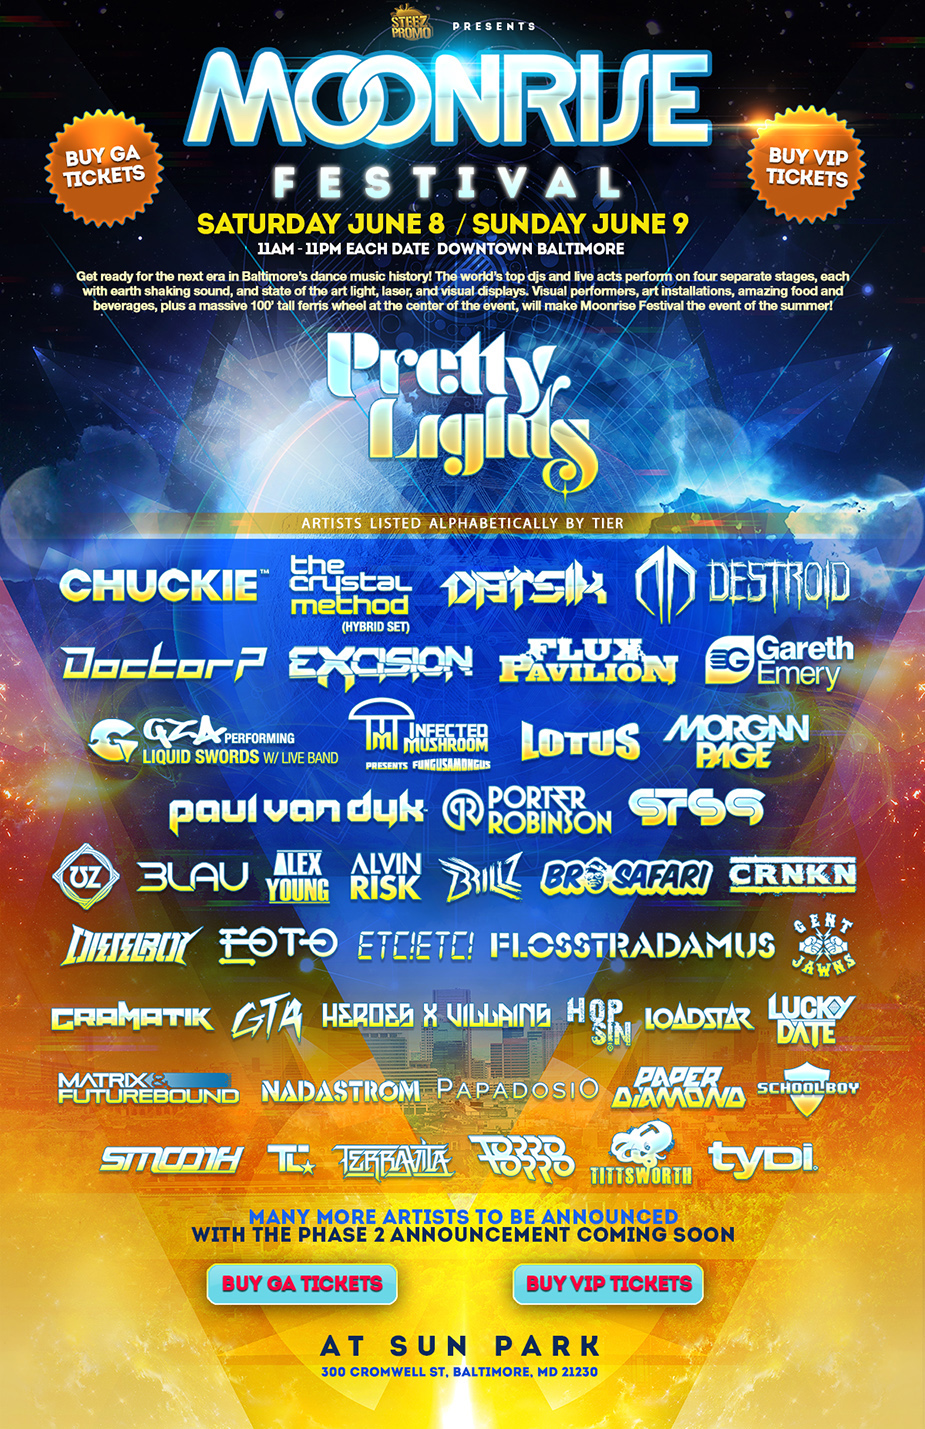 Moonrise Festival Flyer